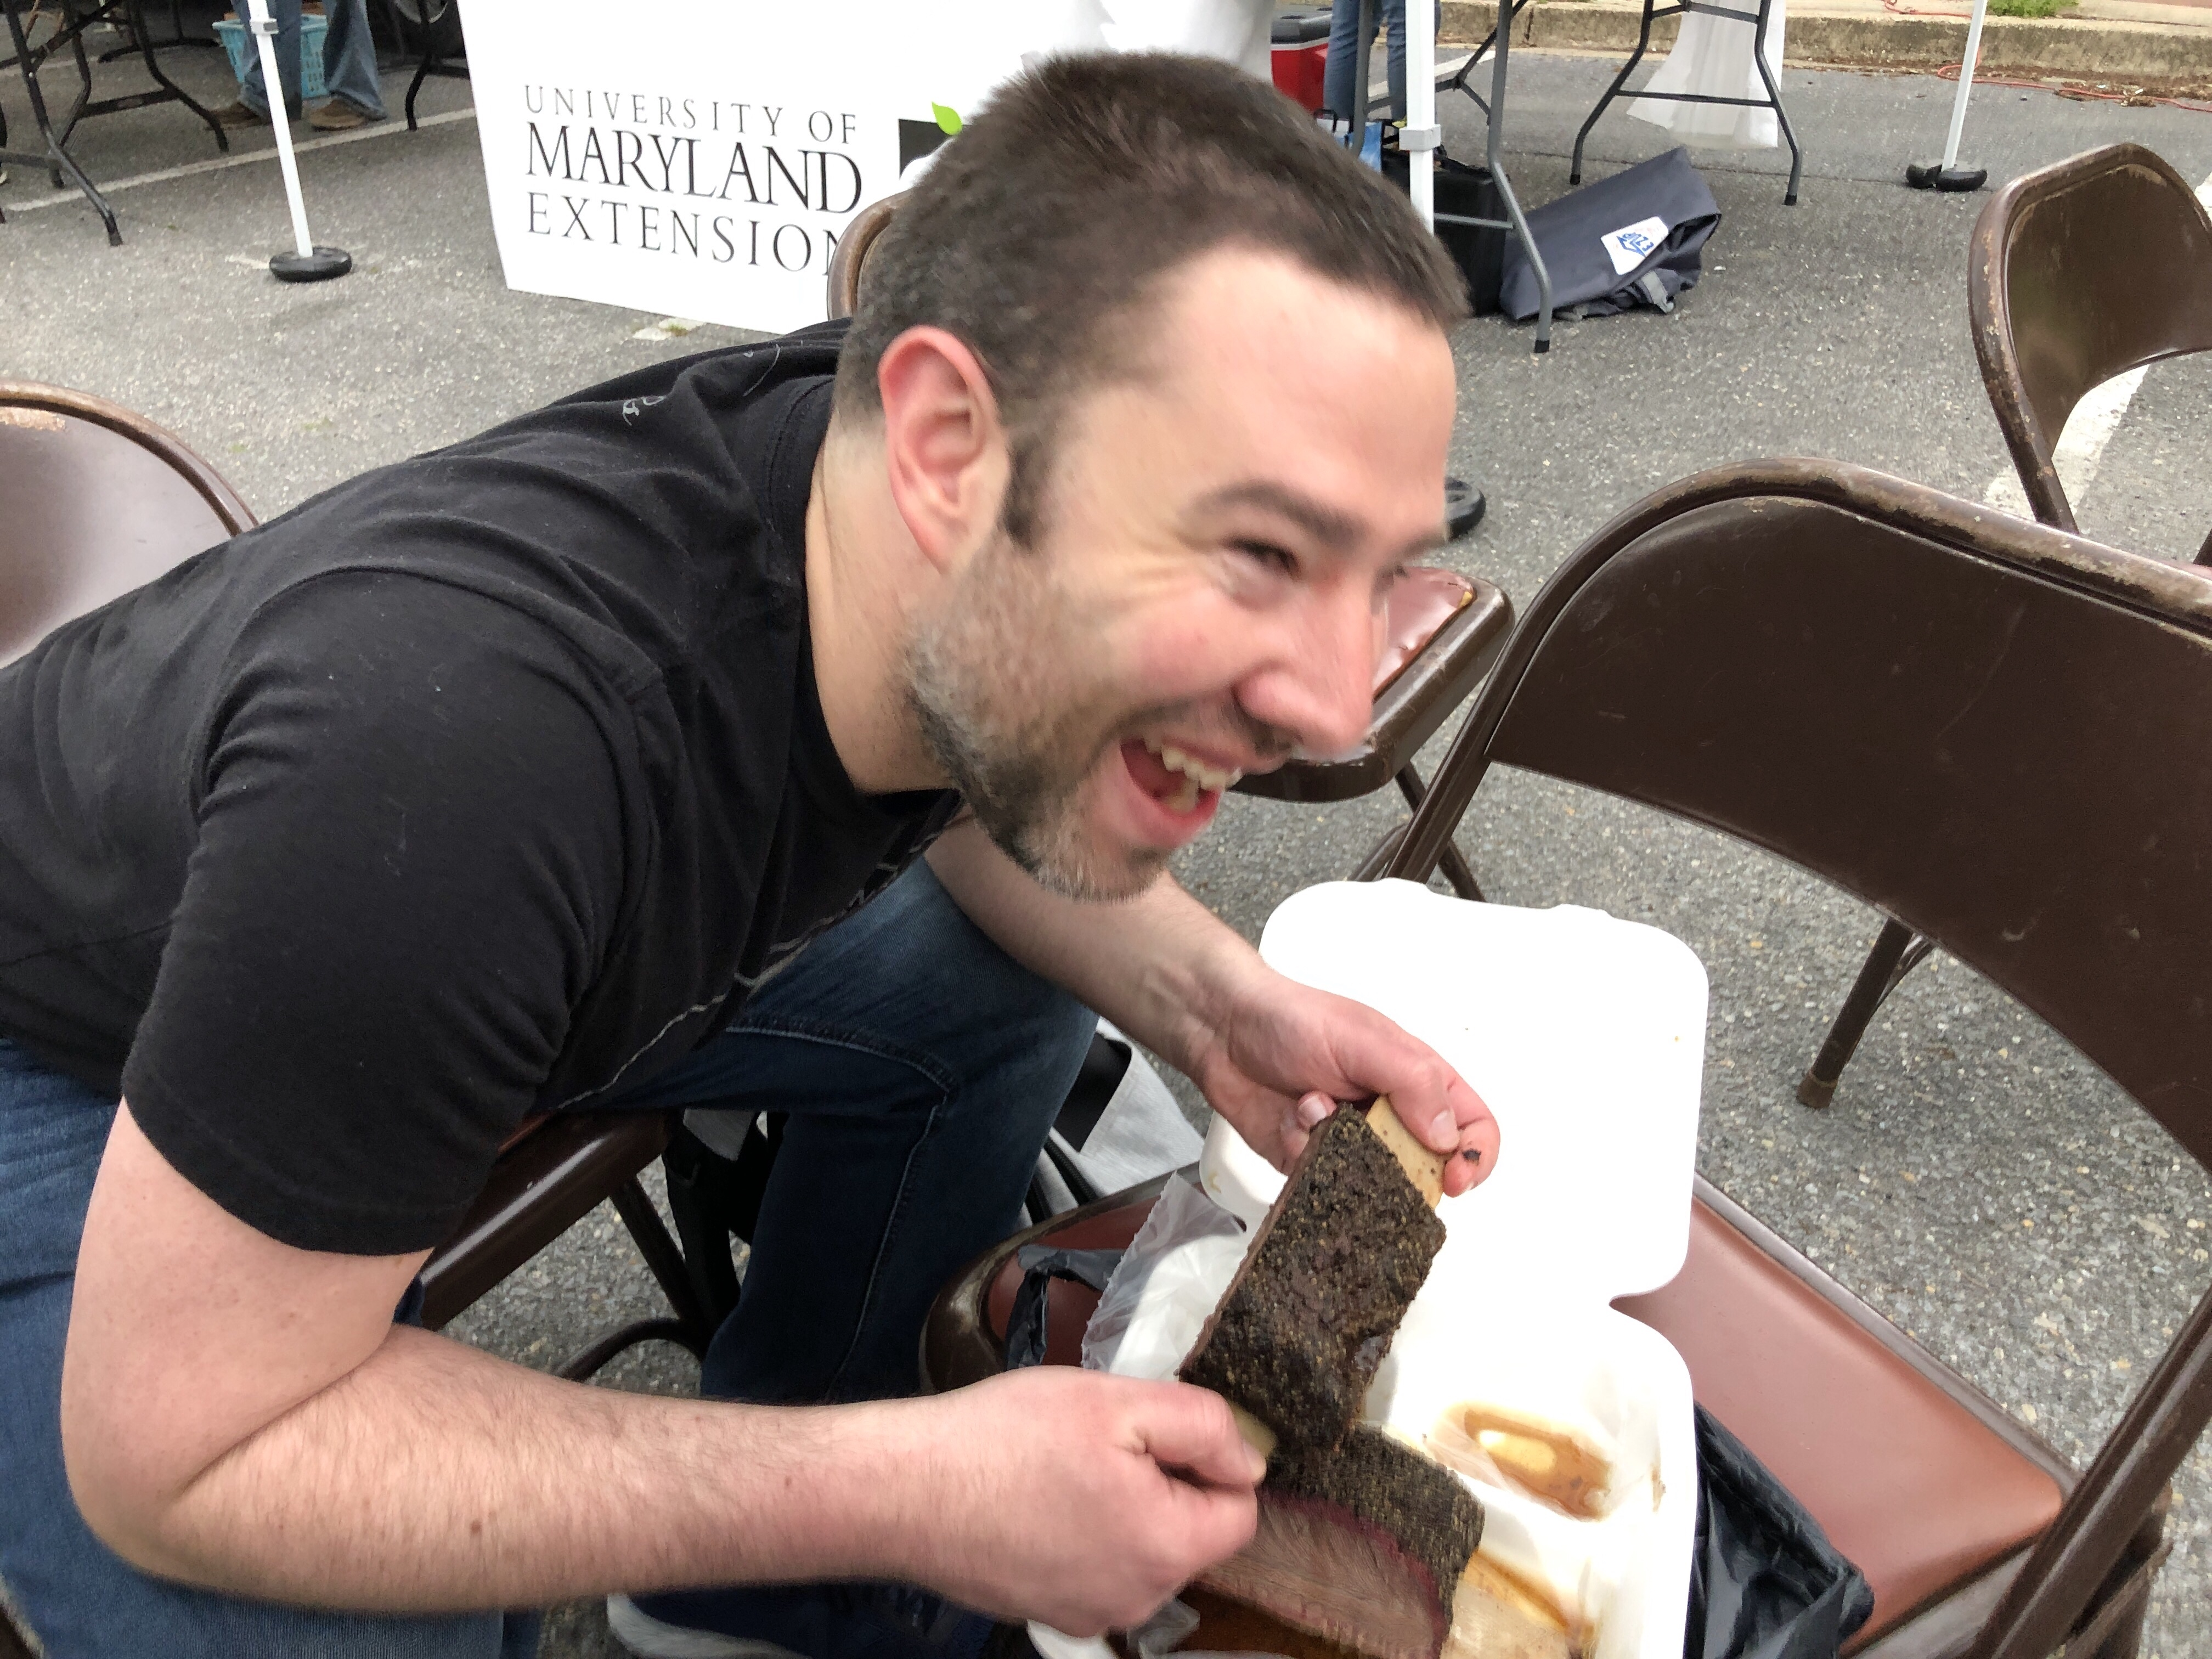 Paul eating barbecue at 250 Texas BBQ in Riverdale Park, Maryland